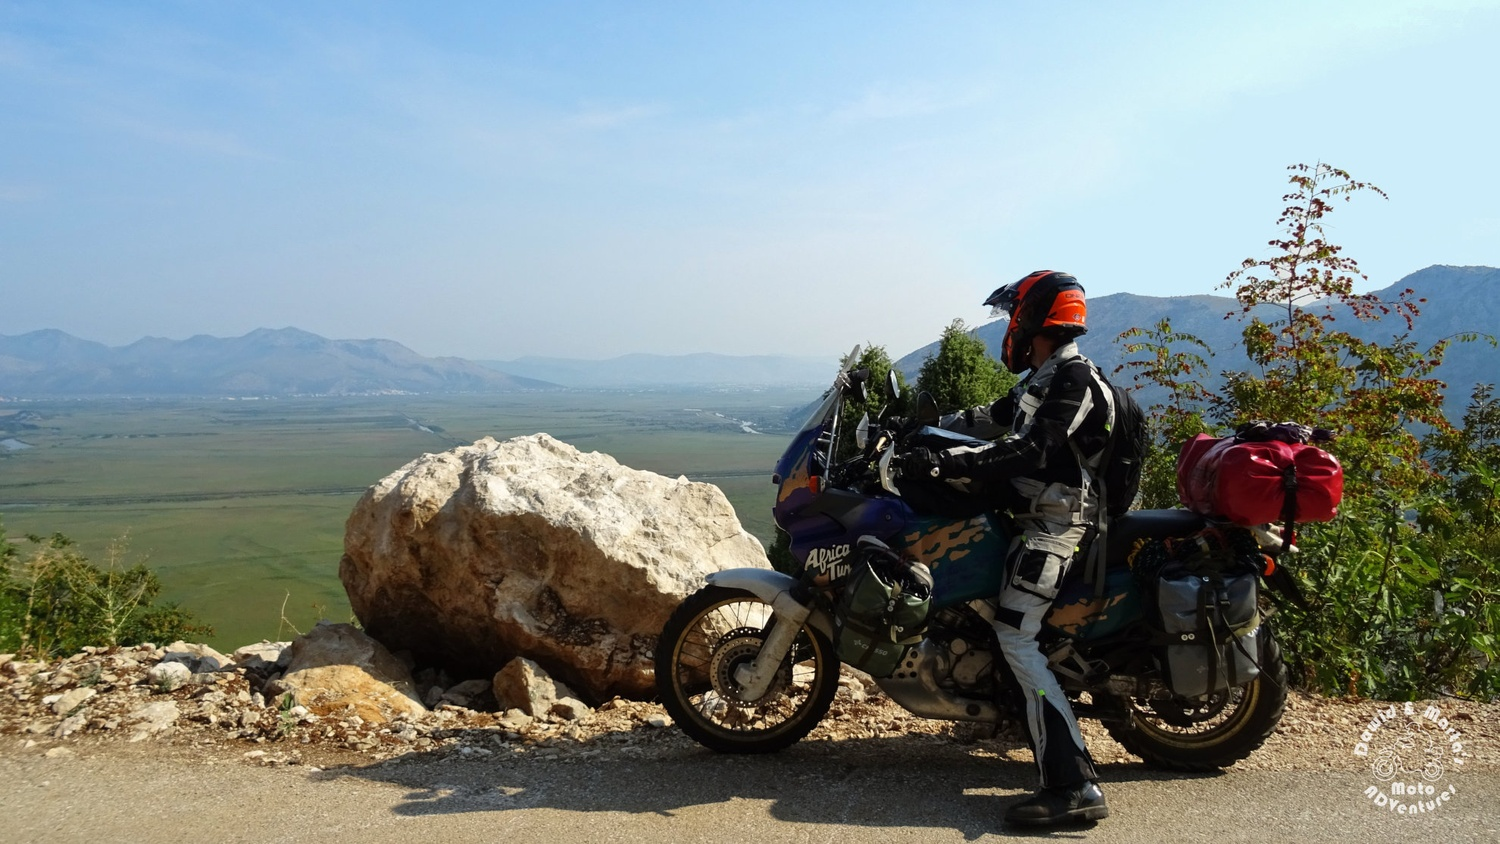 Africa Twin at the Kuti Lake, Croatia